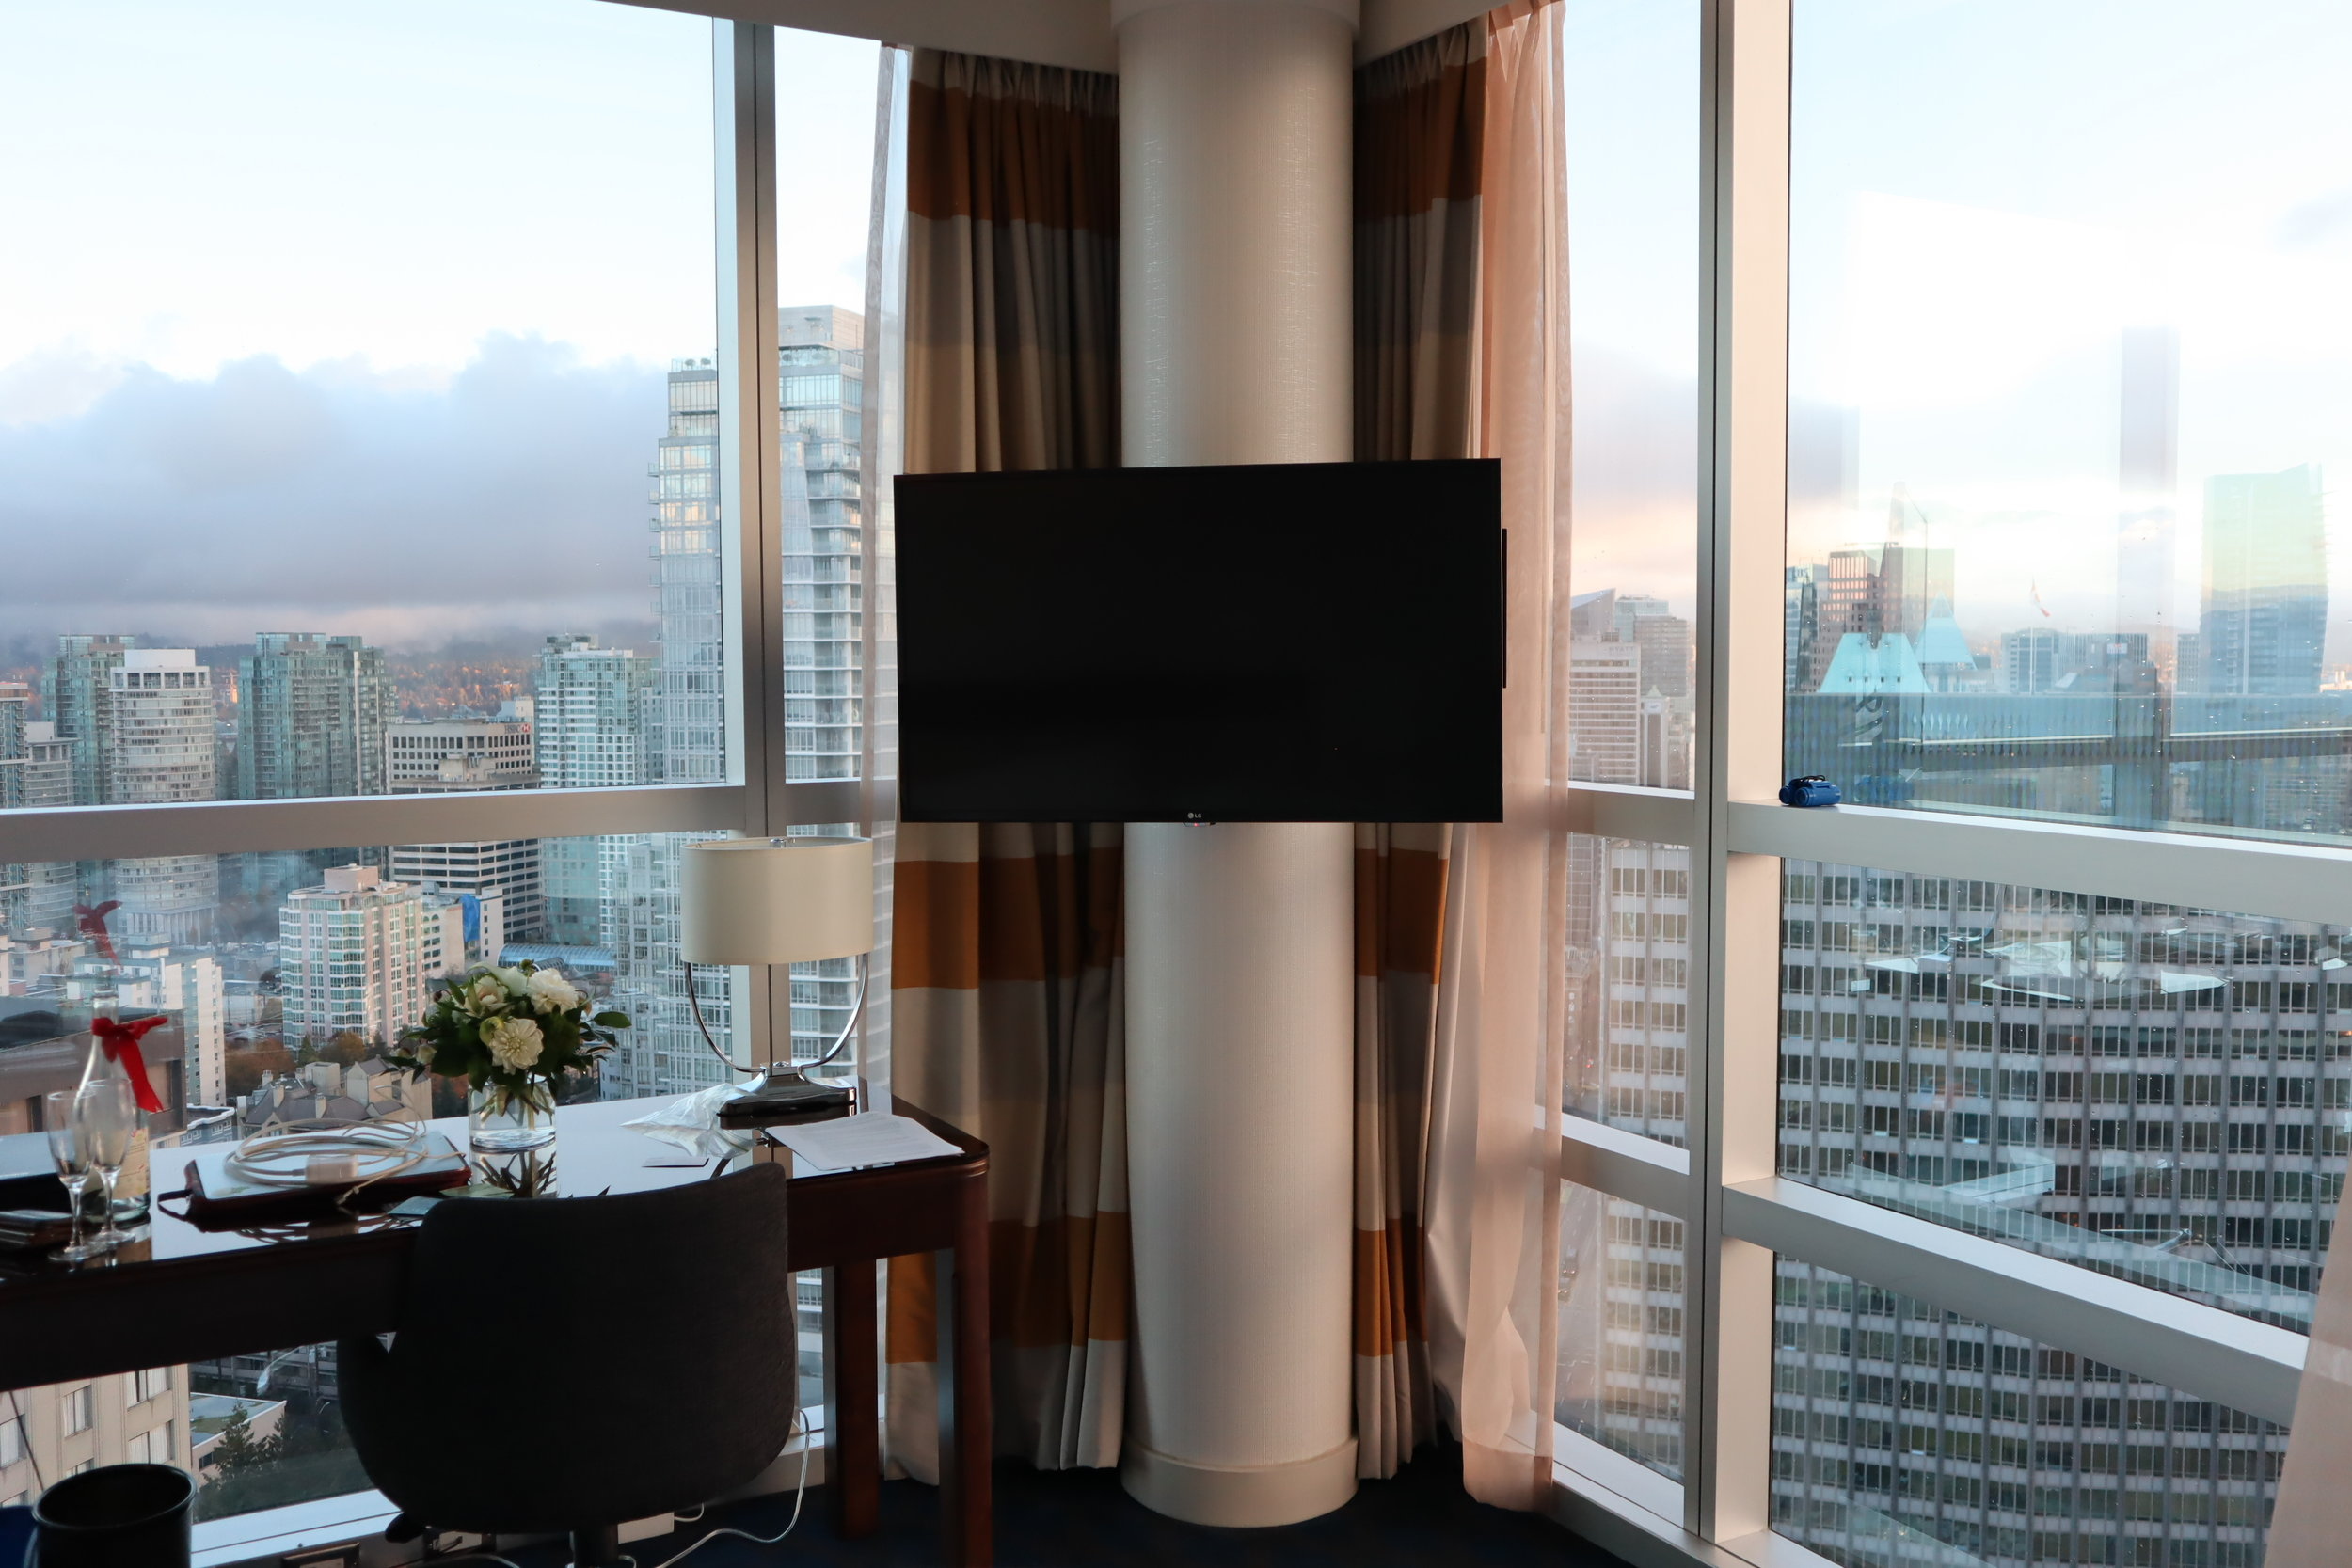 Sheraton Vancouver Wall Centre – Corner suite daytime views